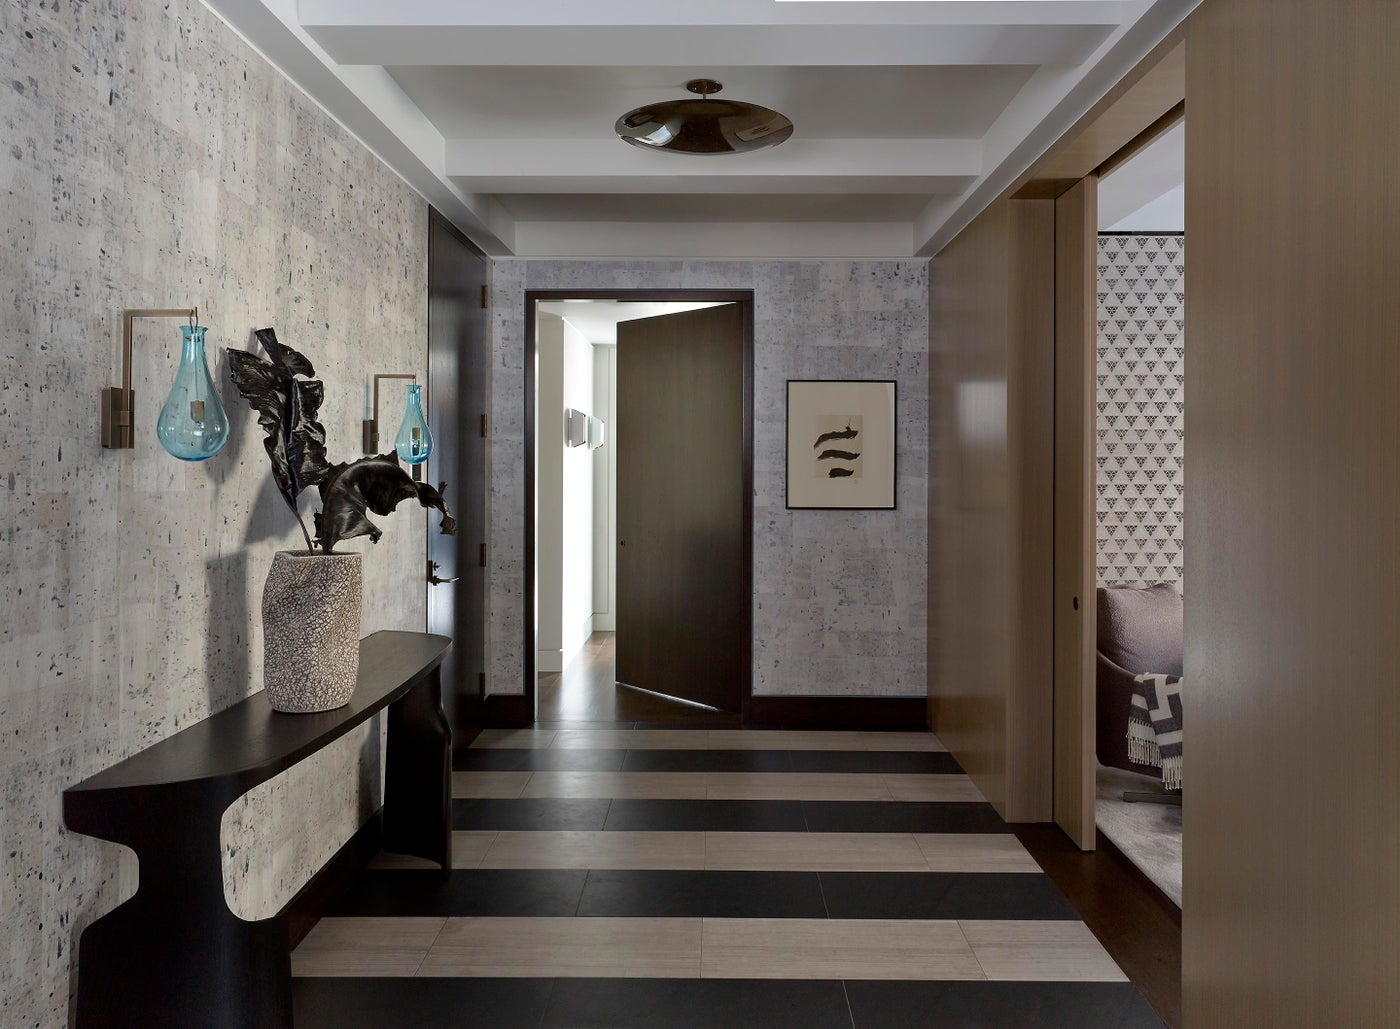 Graphic entrance gallery with custom wallpaper and glass sconces